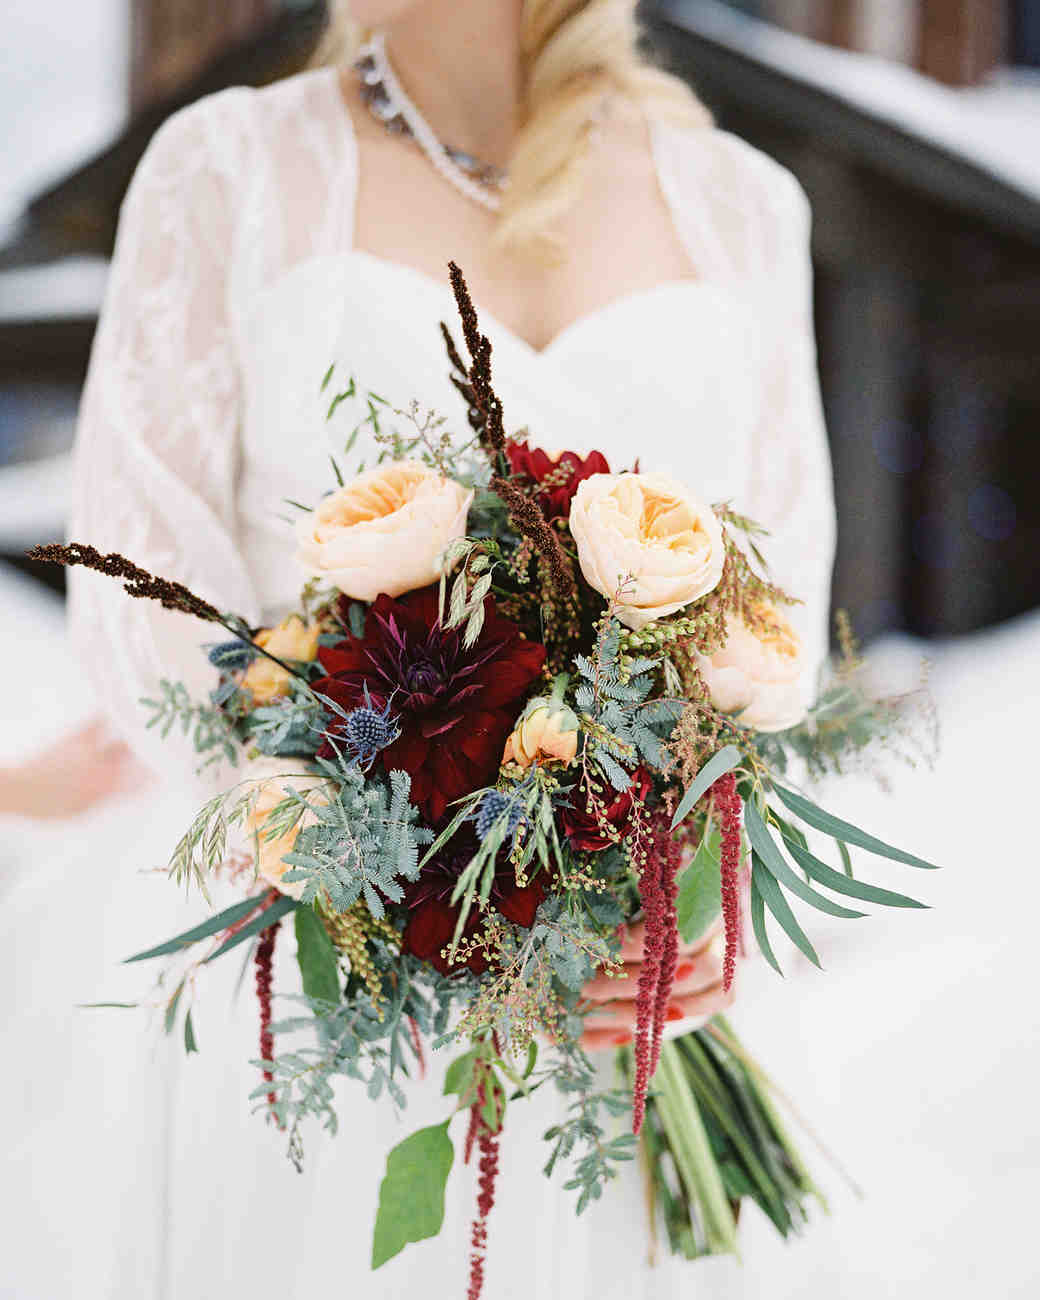 Christmas Wedding Flower Ideas: 52 Gorgeous Winter Wedding Bouquets